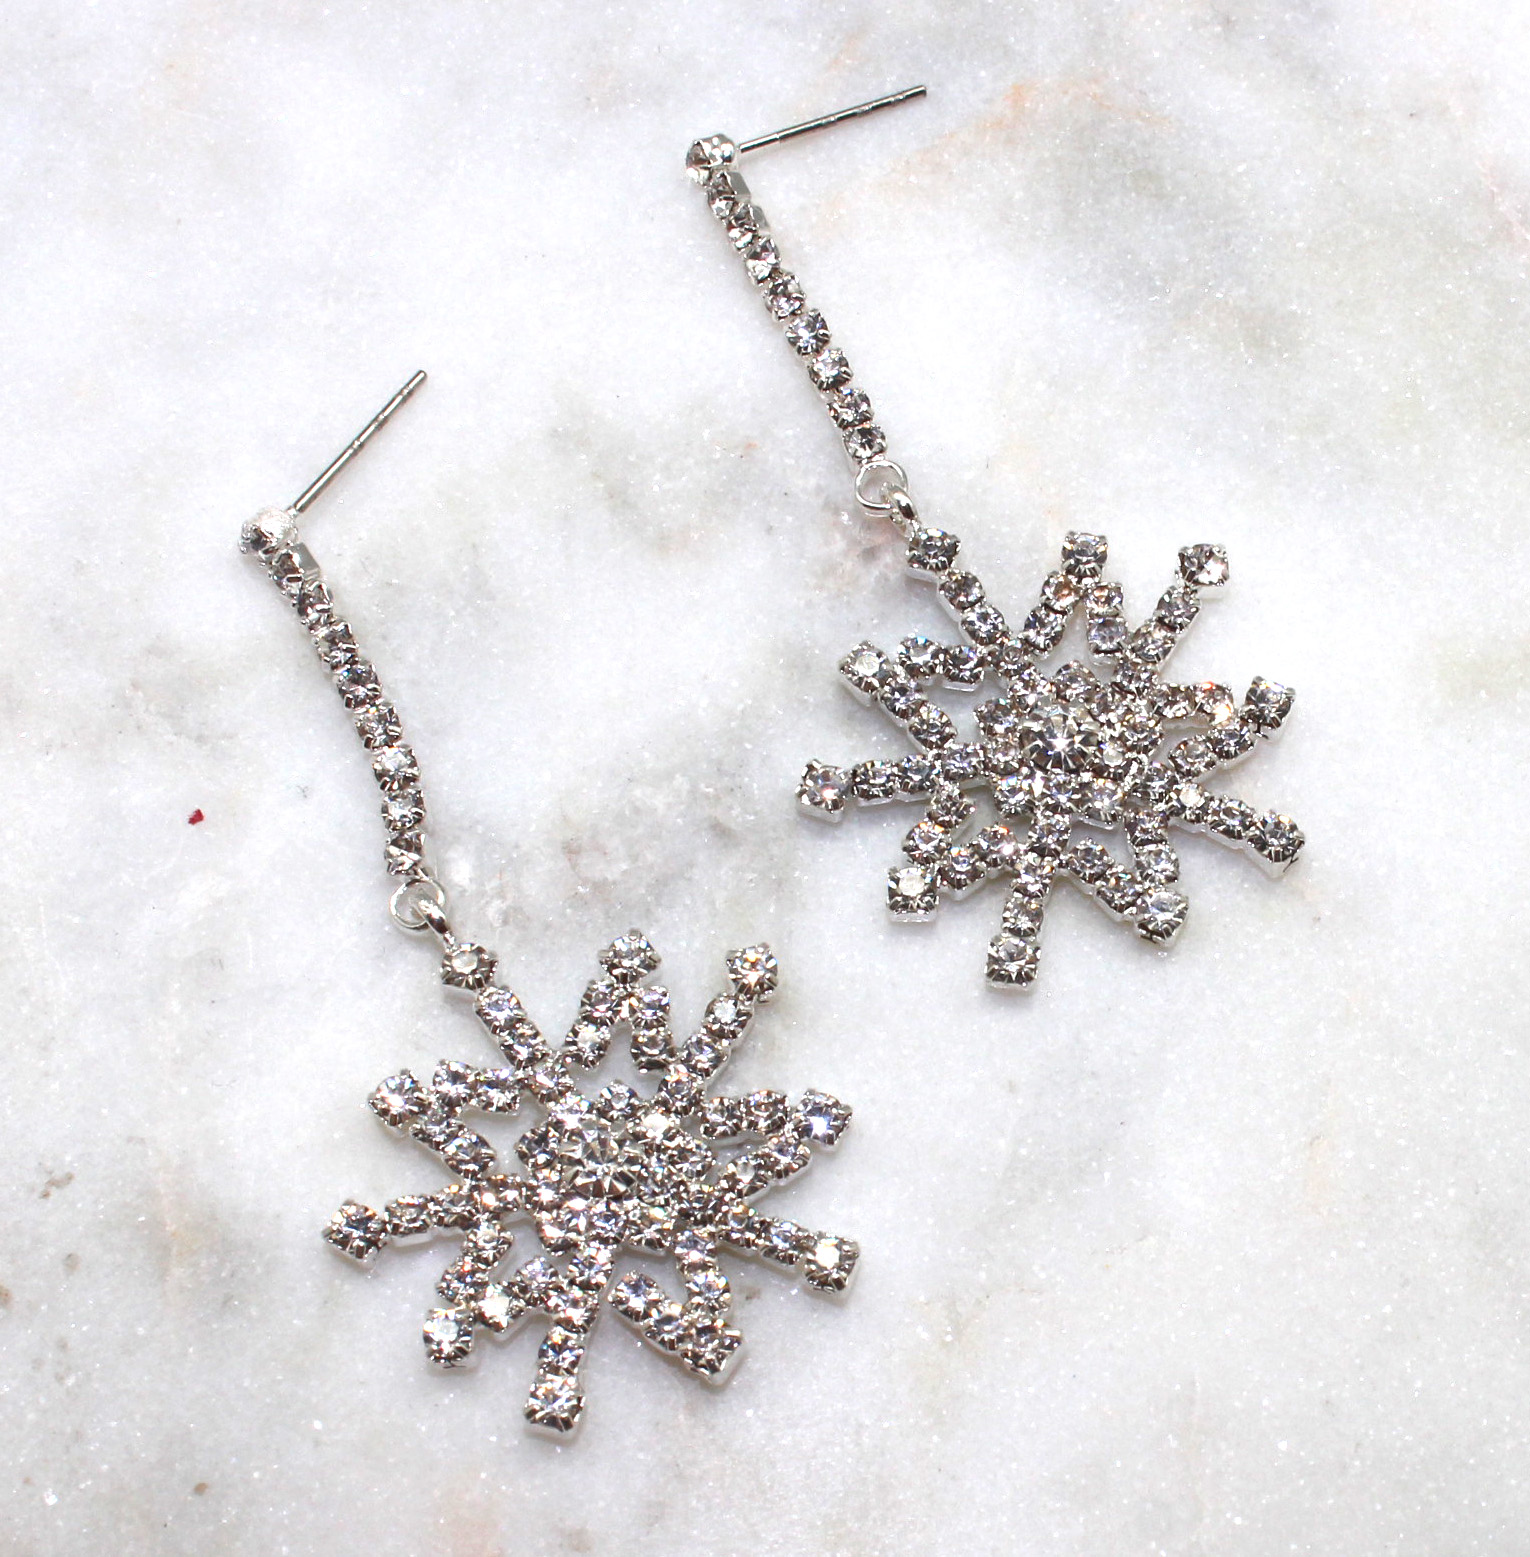 Shivering Snowflake Earrings